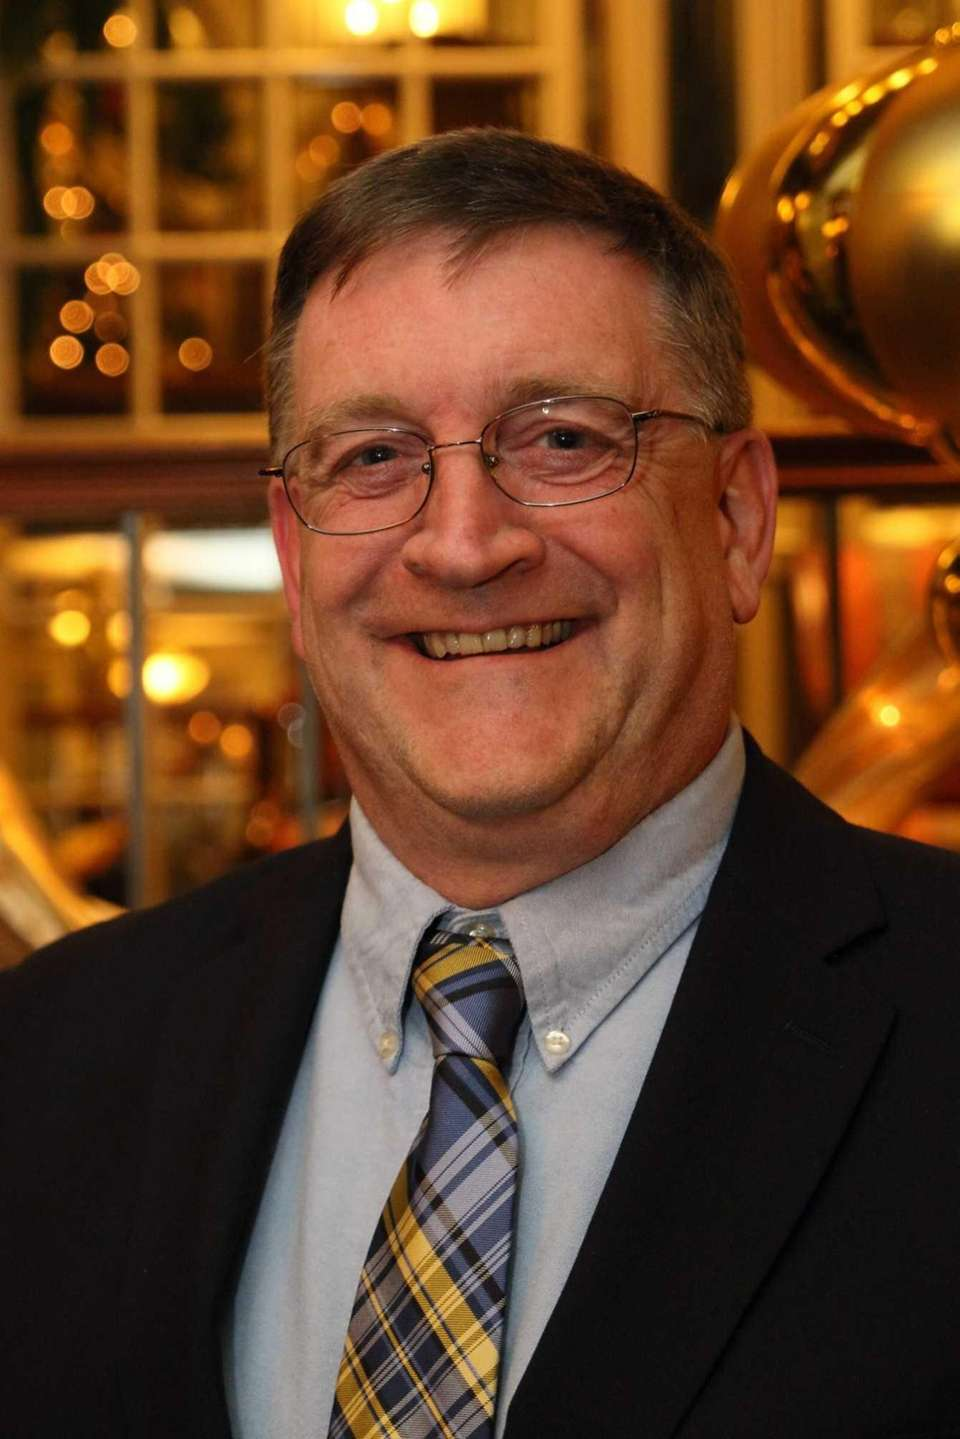 Michael O'Connell of Jamesport has been elected chairman